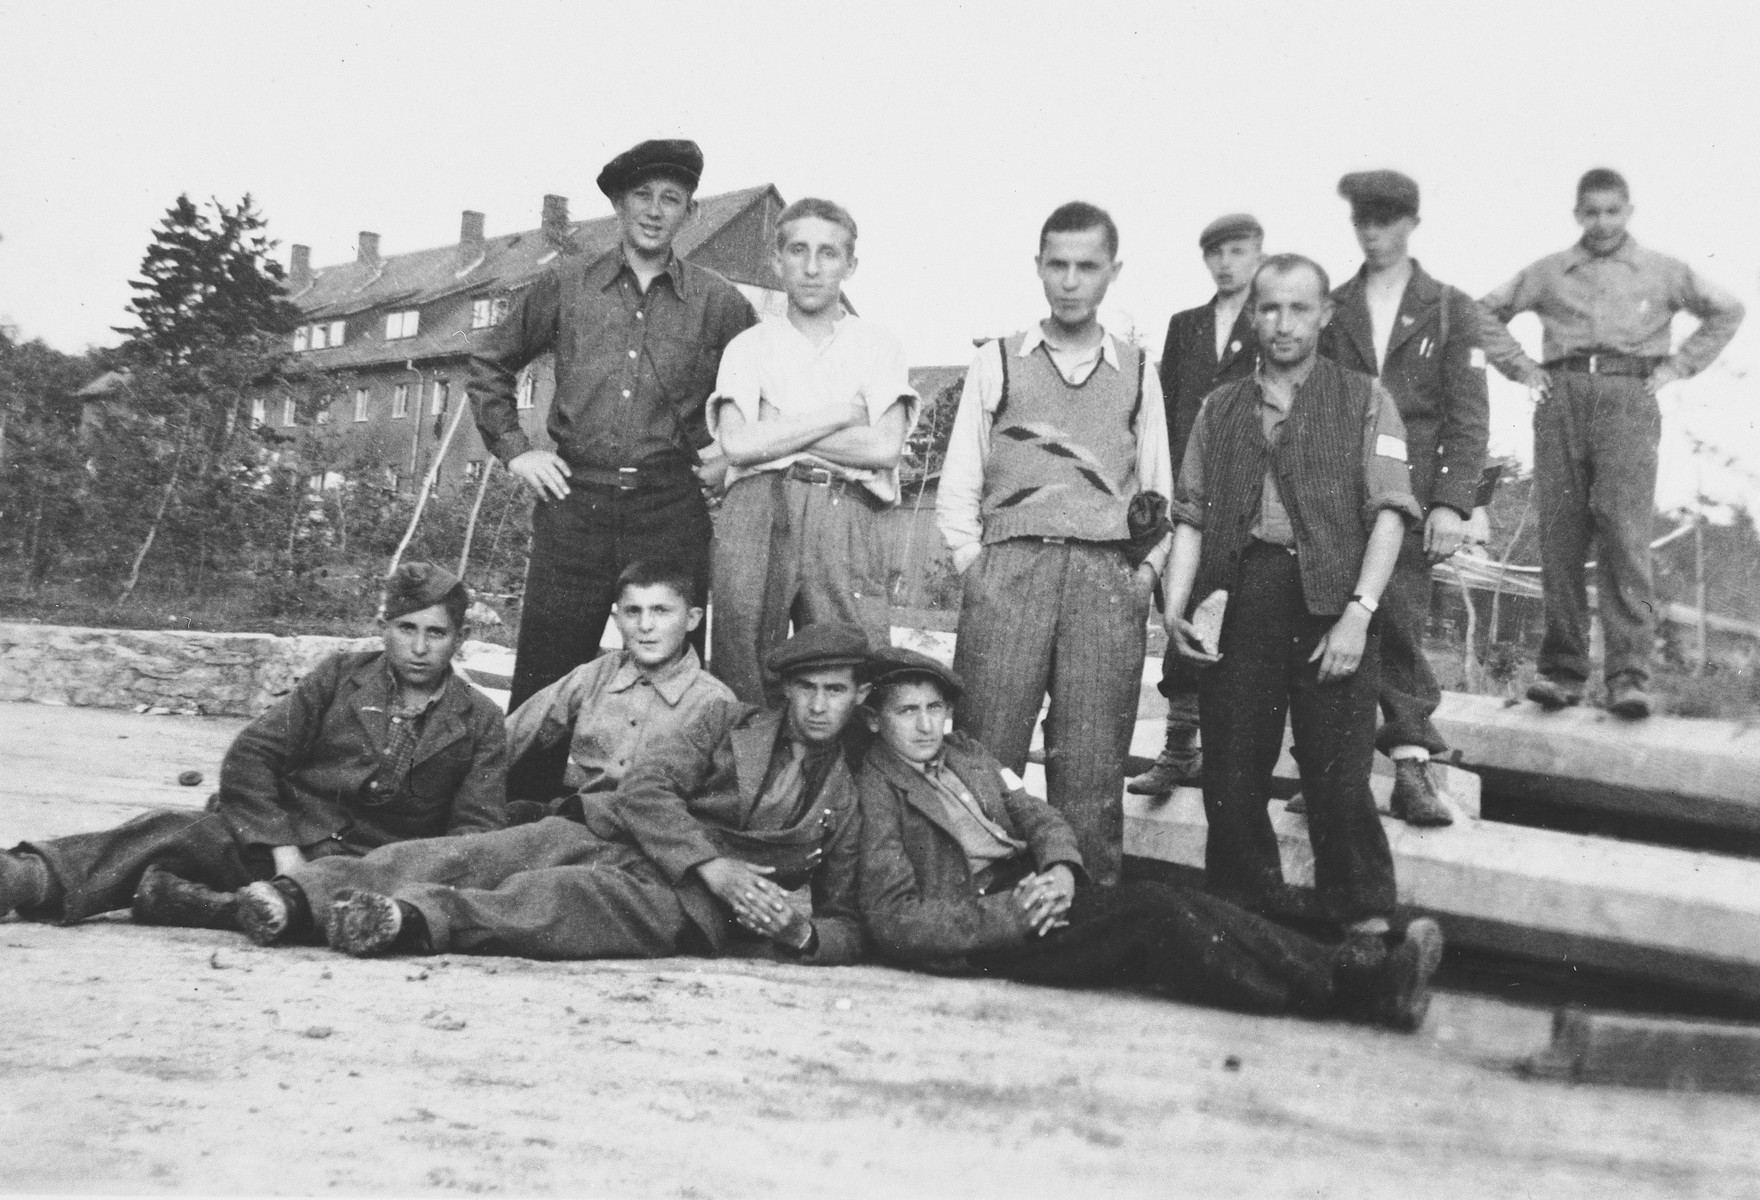 Group portrait of young teenage survivors of Buchenwald prior to their departure for children's homes in France and Switzerland.  Abraham Grajz is pictured on the bottom left.